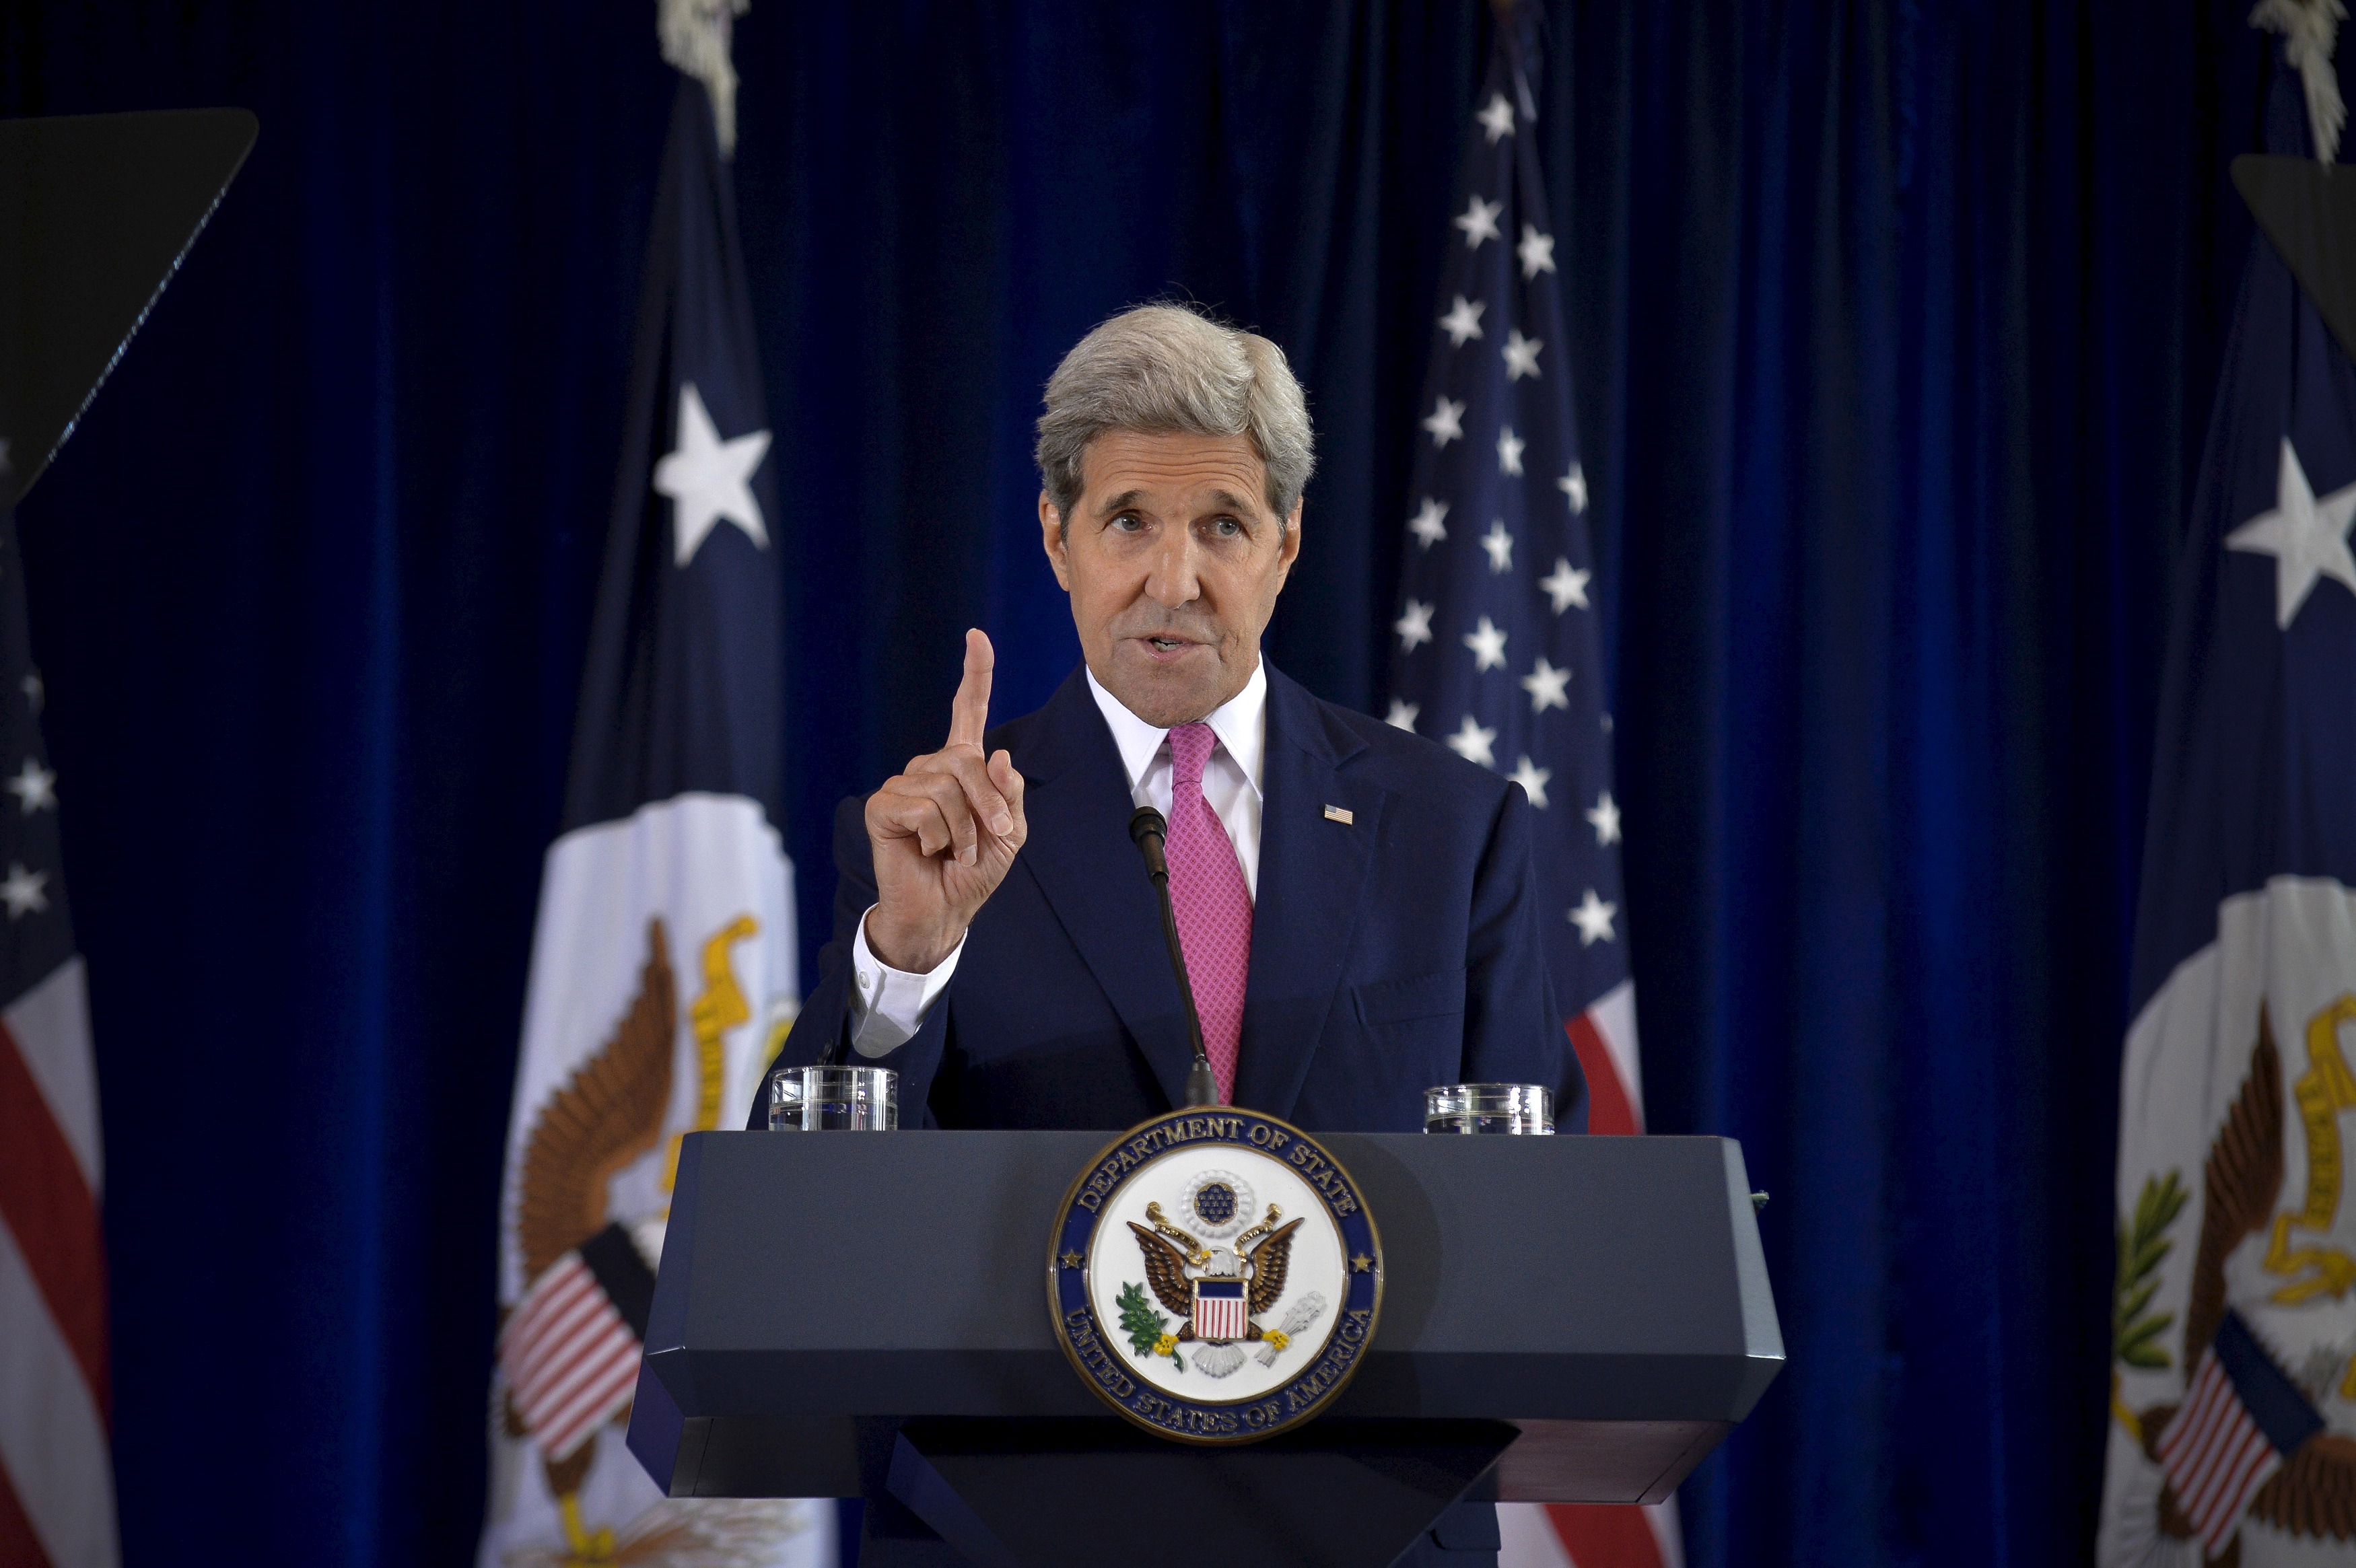 U.S. Secretary of State John Kerry delivers a speech on the nuclear agreement with Iran, in Philadelphia on Sept. 2, 2015.